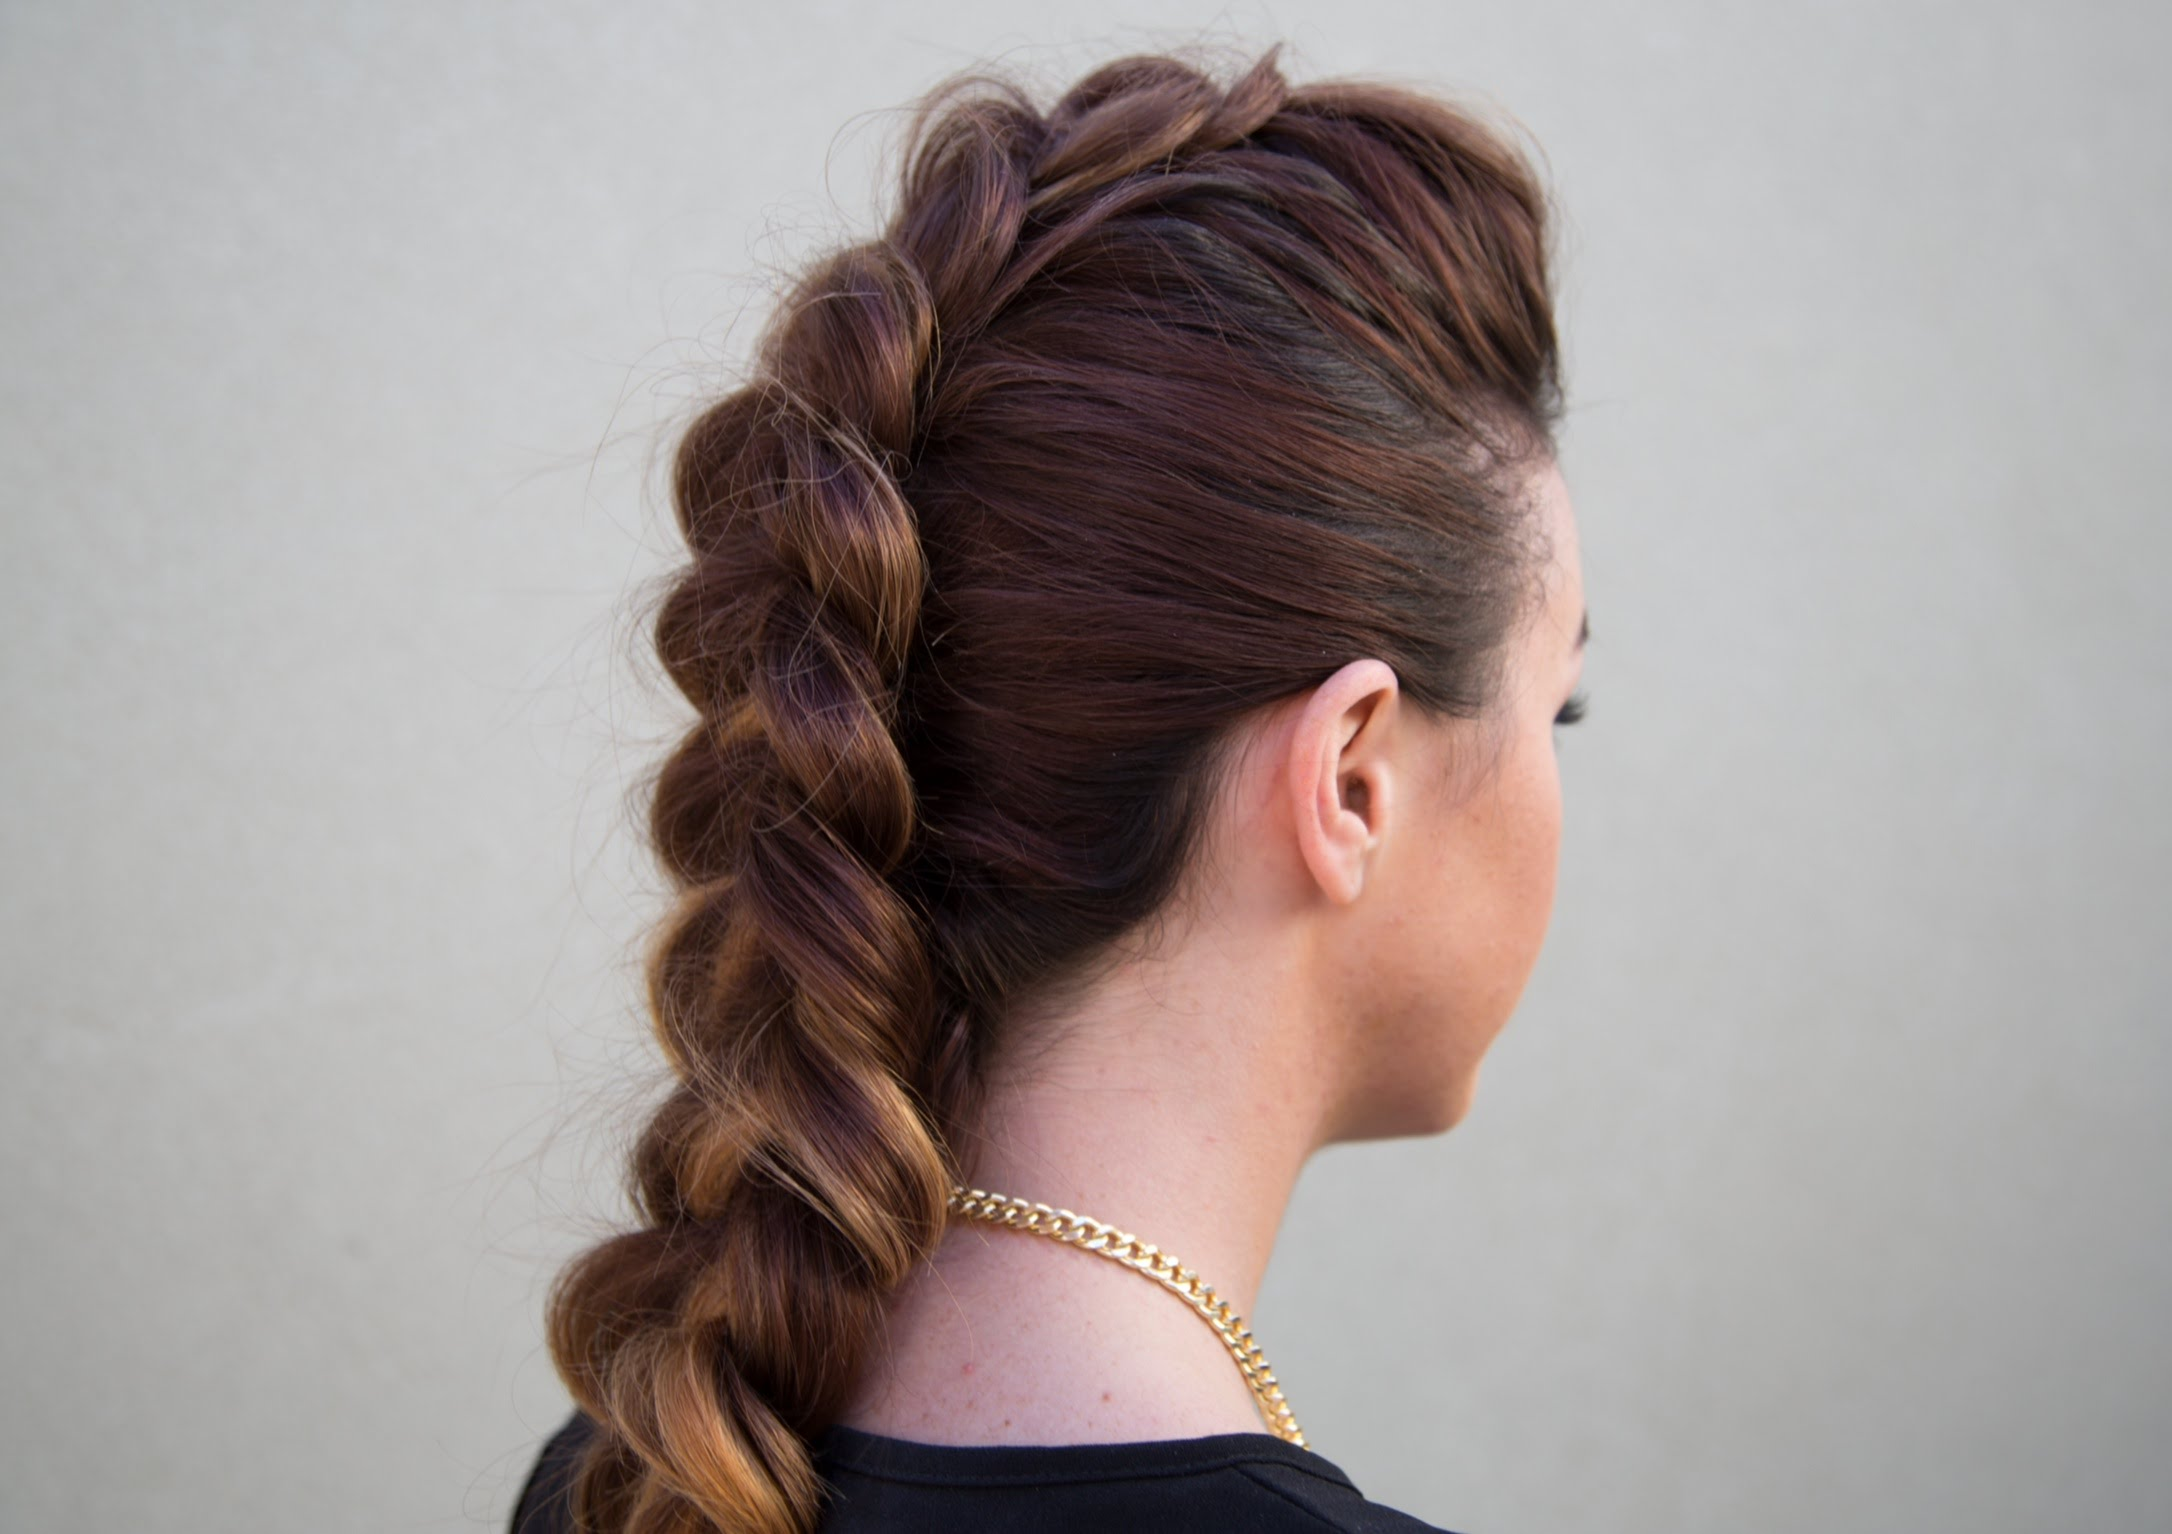 Hairstyles With Dutch Braids: Stunning Braided Hairstyle That Can Style You Elegantly